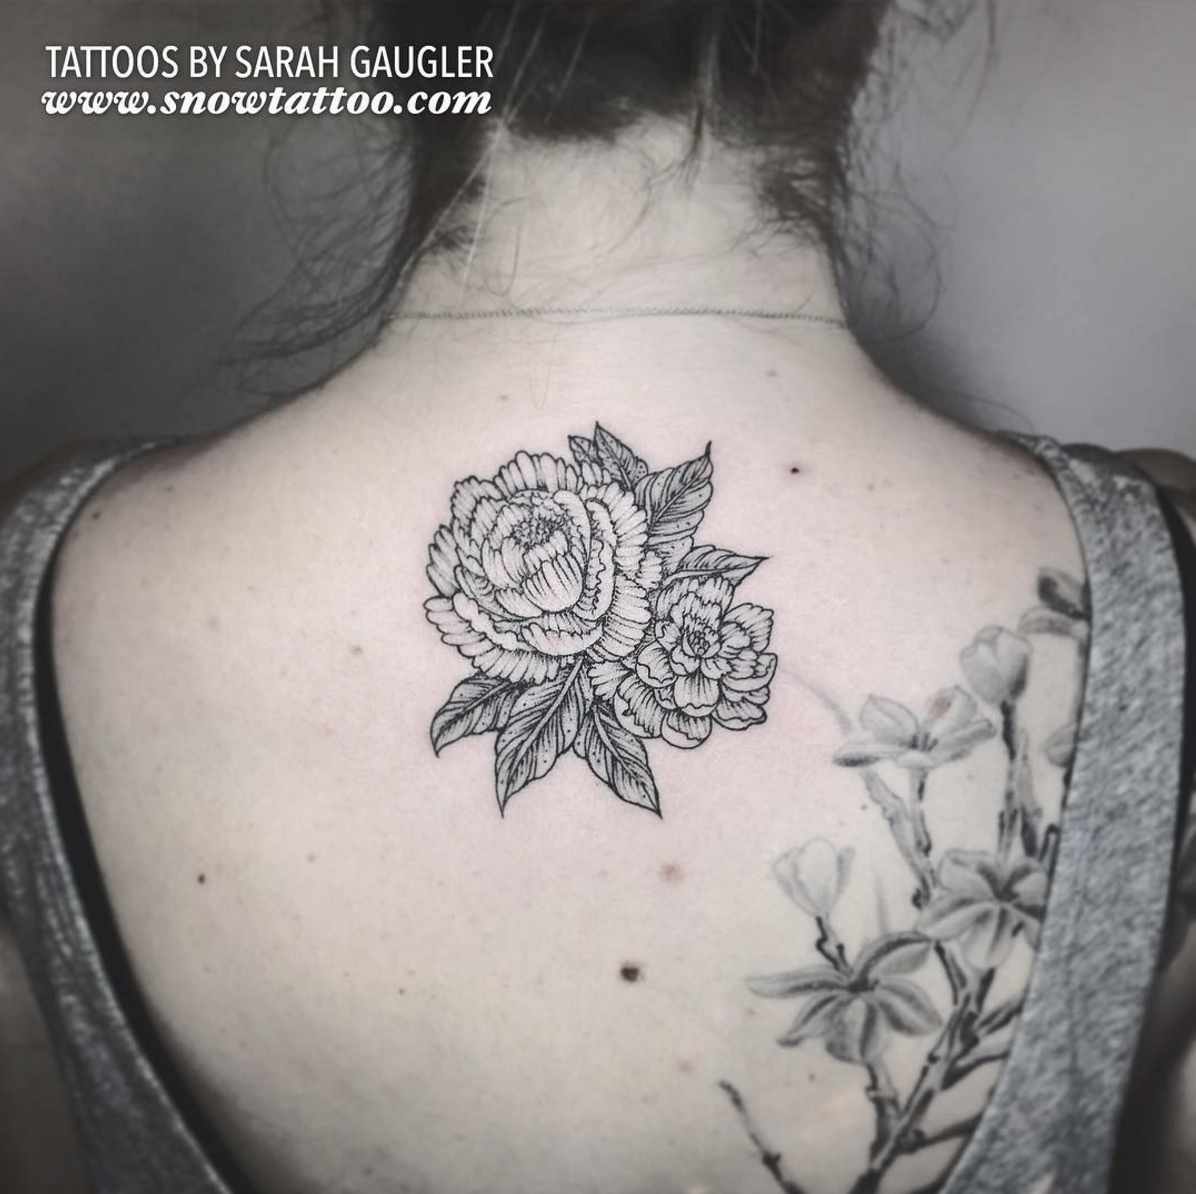 Cusotm+Floral+Peonies+Tattoo+Line+Art+Original+Flash+Tattoo+by+Sarah+Gaugler+at+Snow+Tattoo+New+York+NYC.jpg